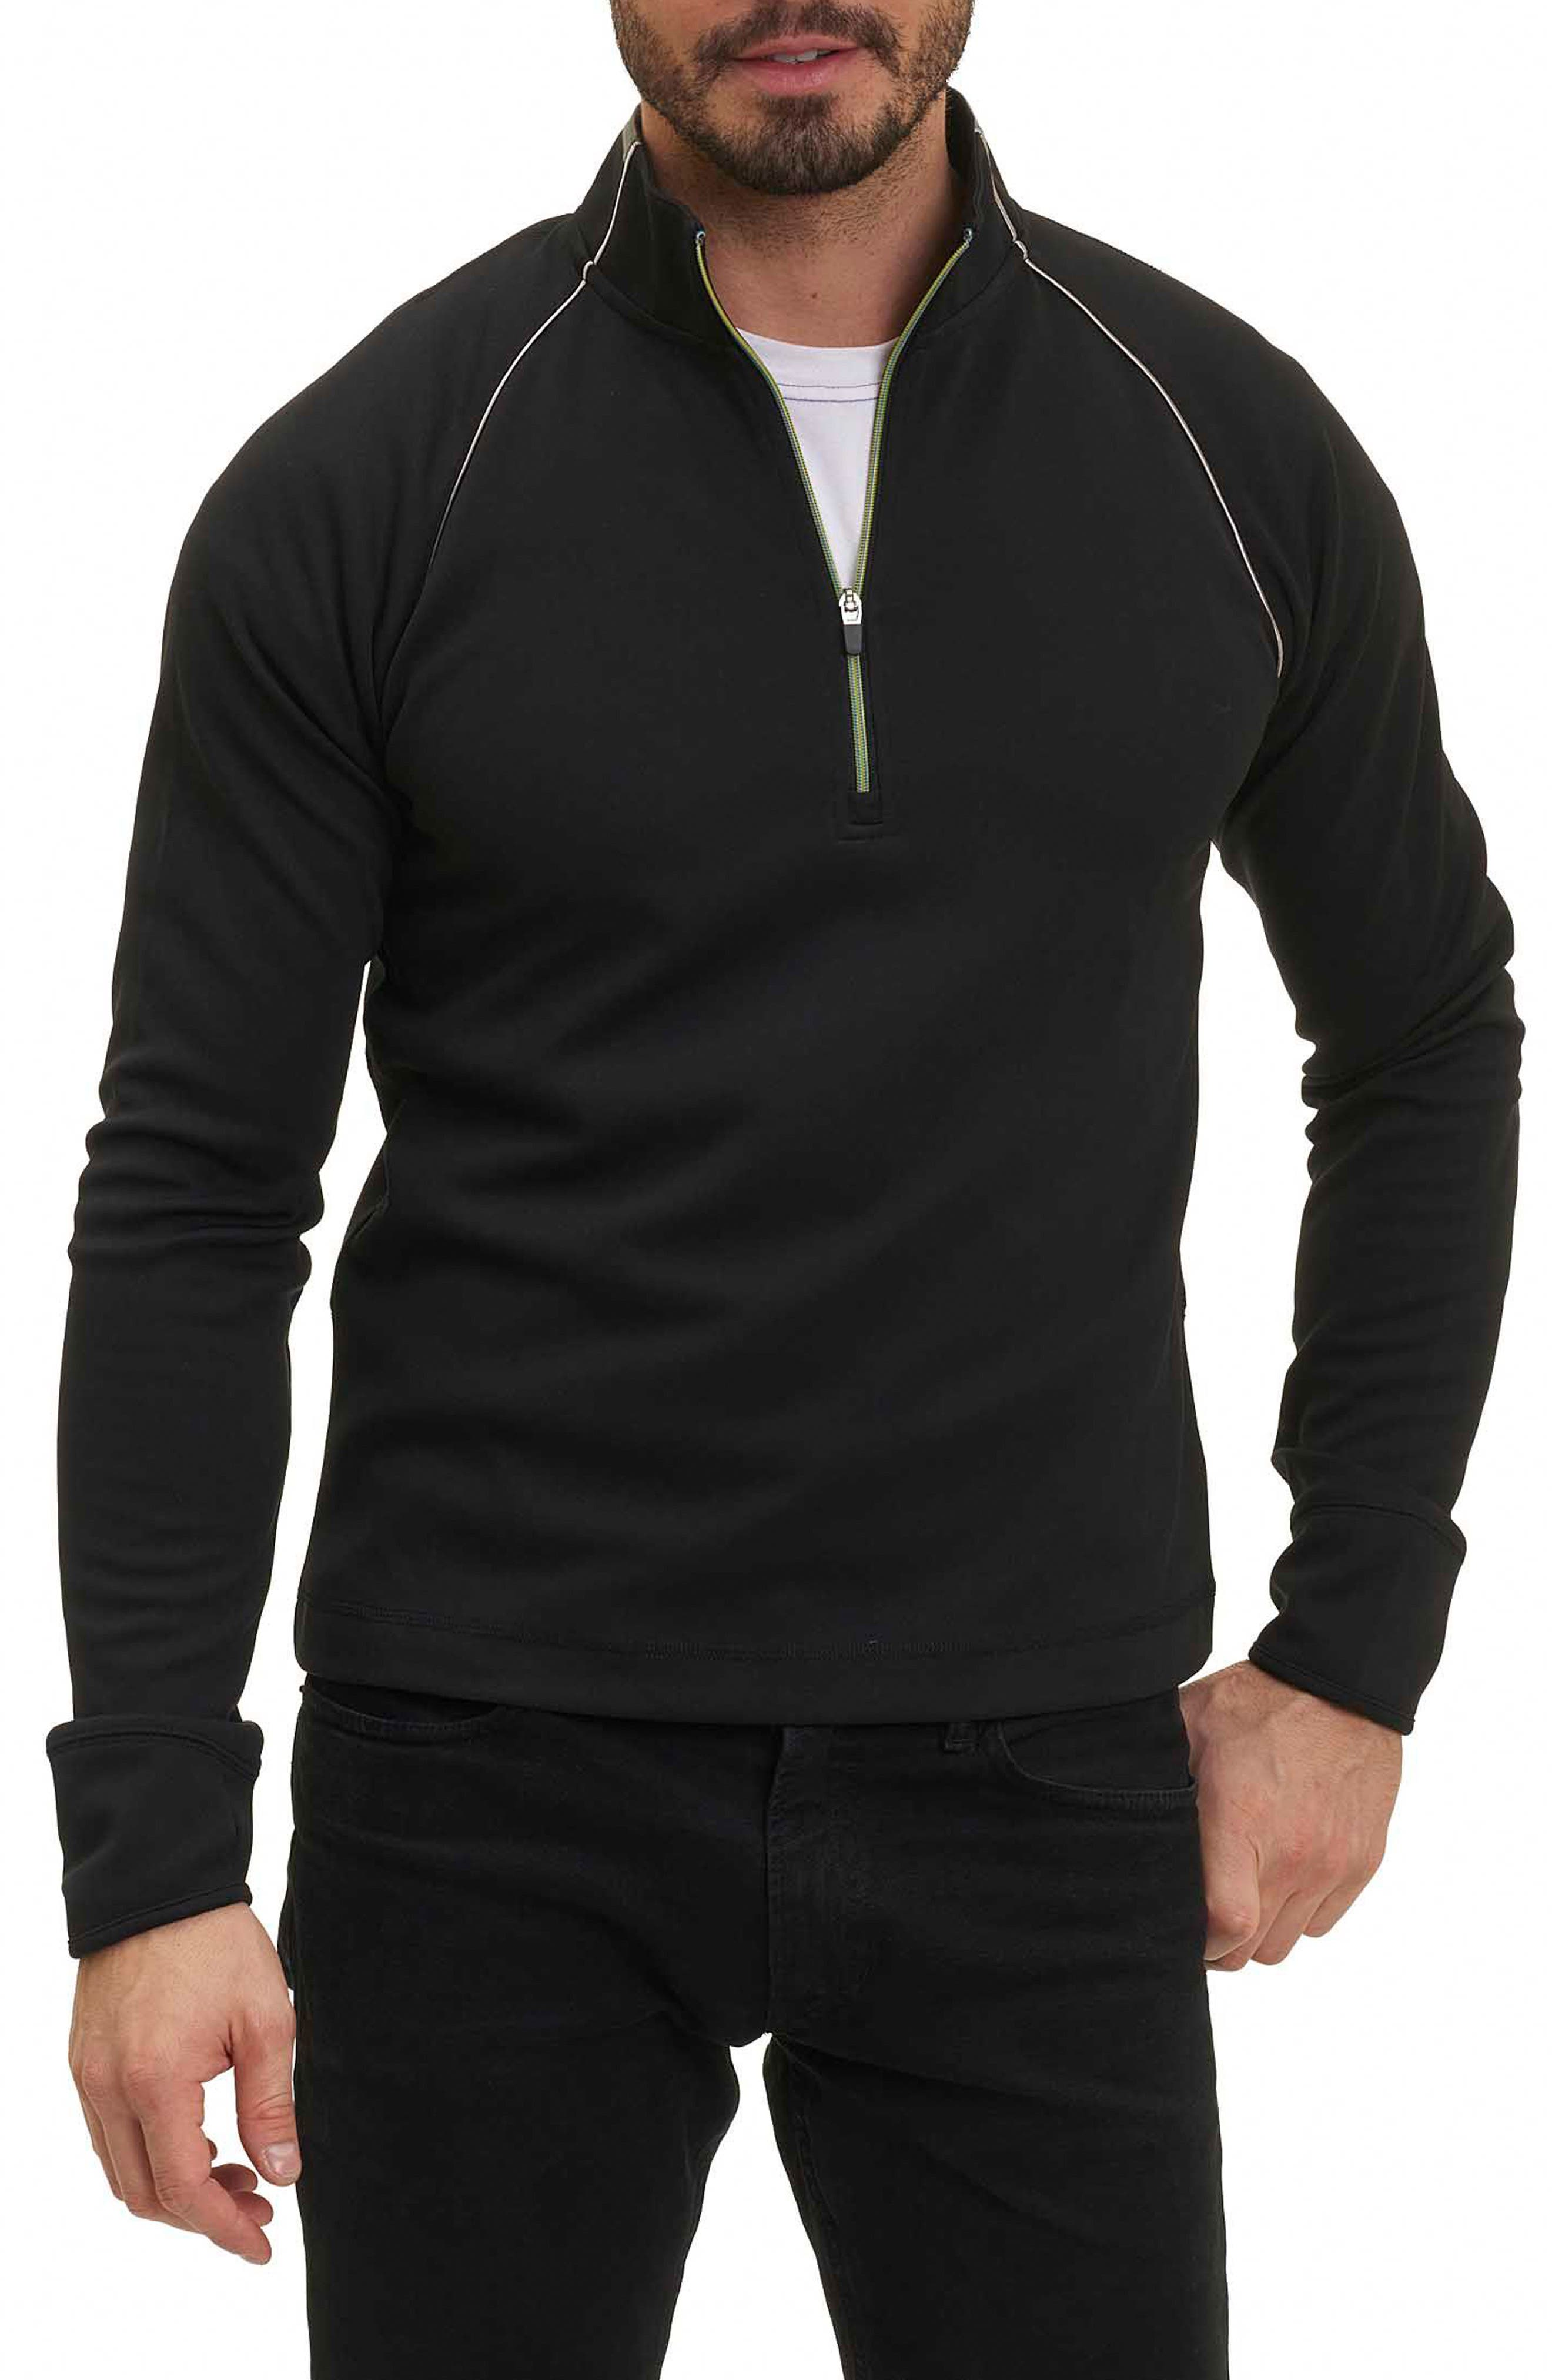 Taylore Quarter Zip Pullover,                             Main thumbnail 1, color,                             001